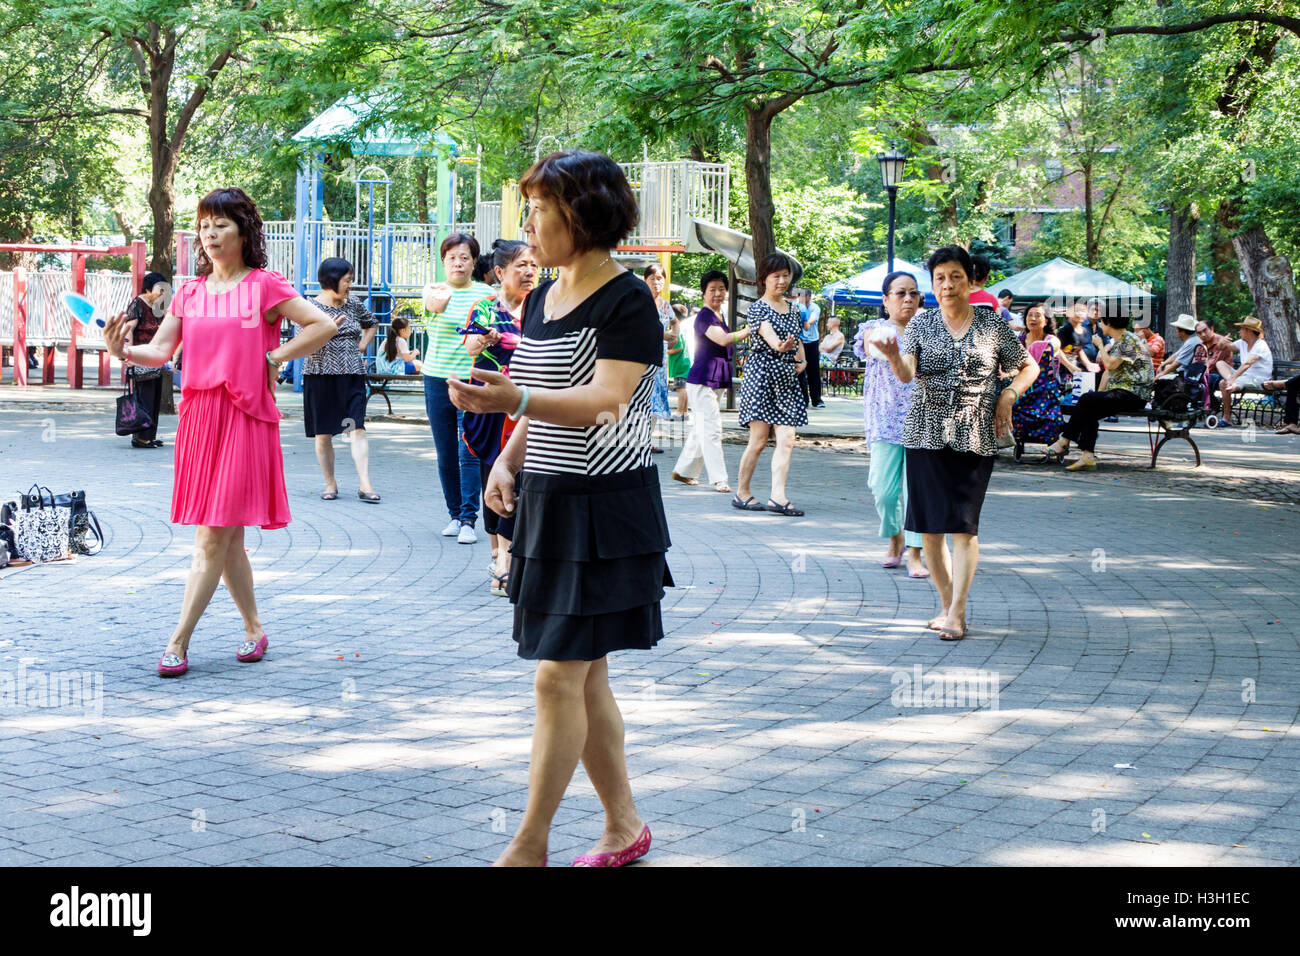 Lower Manhattan New York City NYC NY Chinatown Seward Park public park playground Tai Chi exercise Asian woman mature - Stock Image